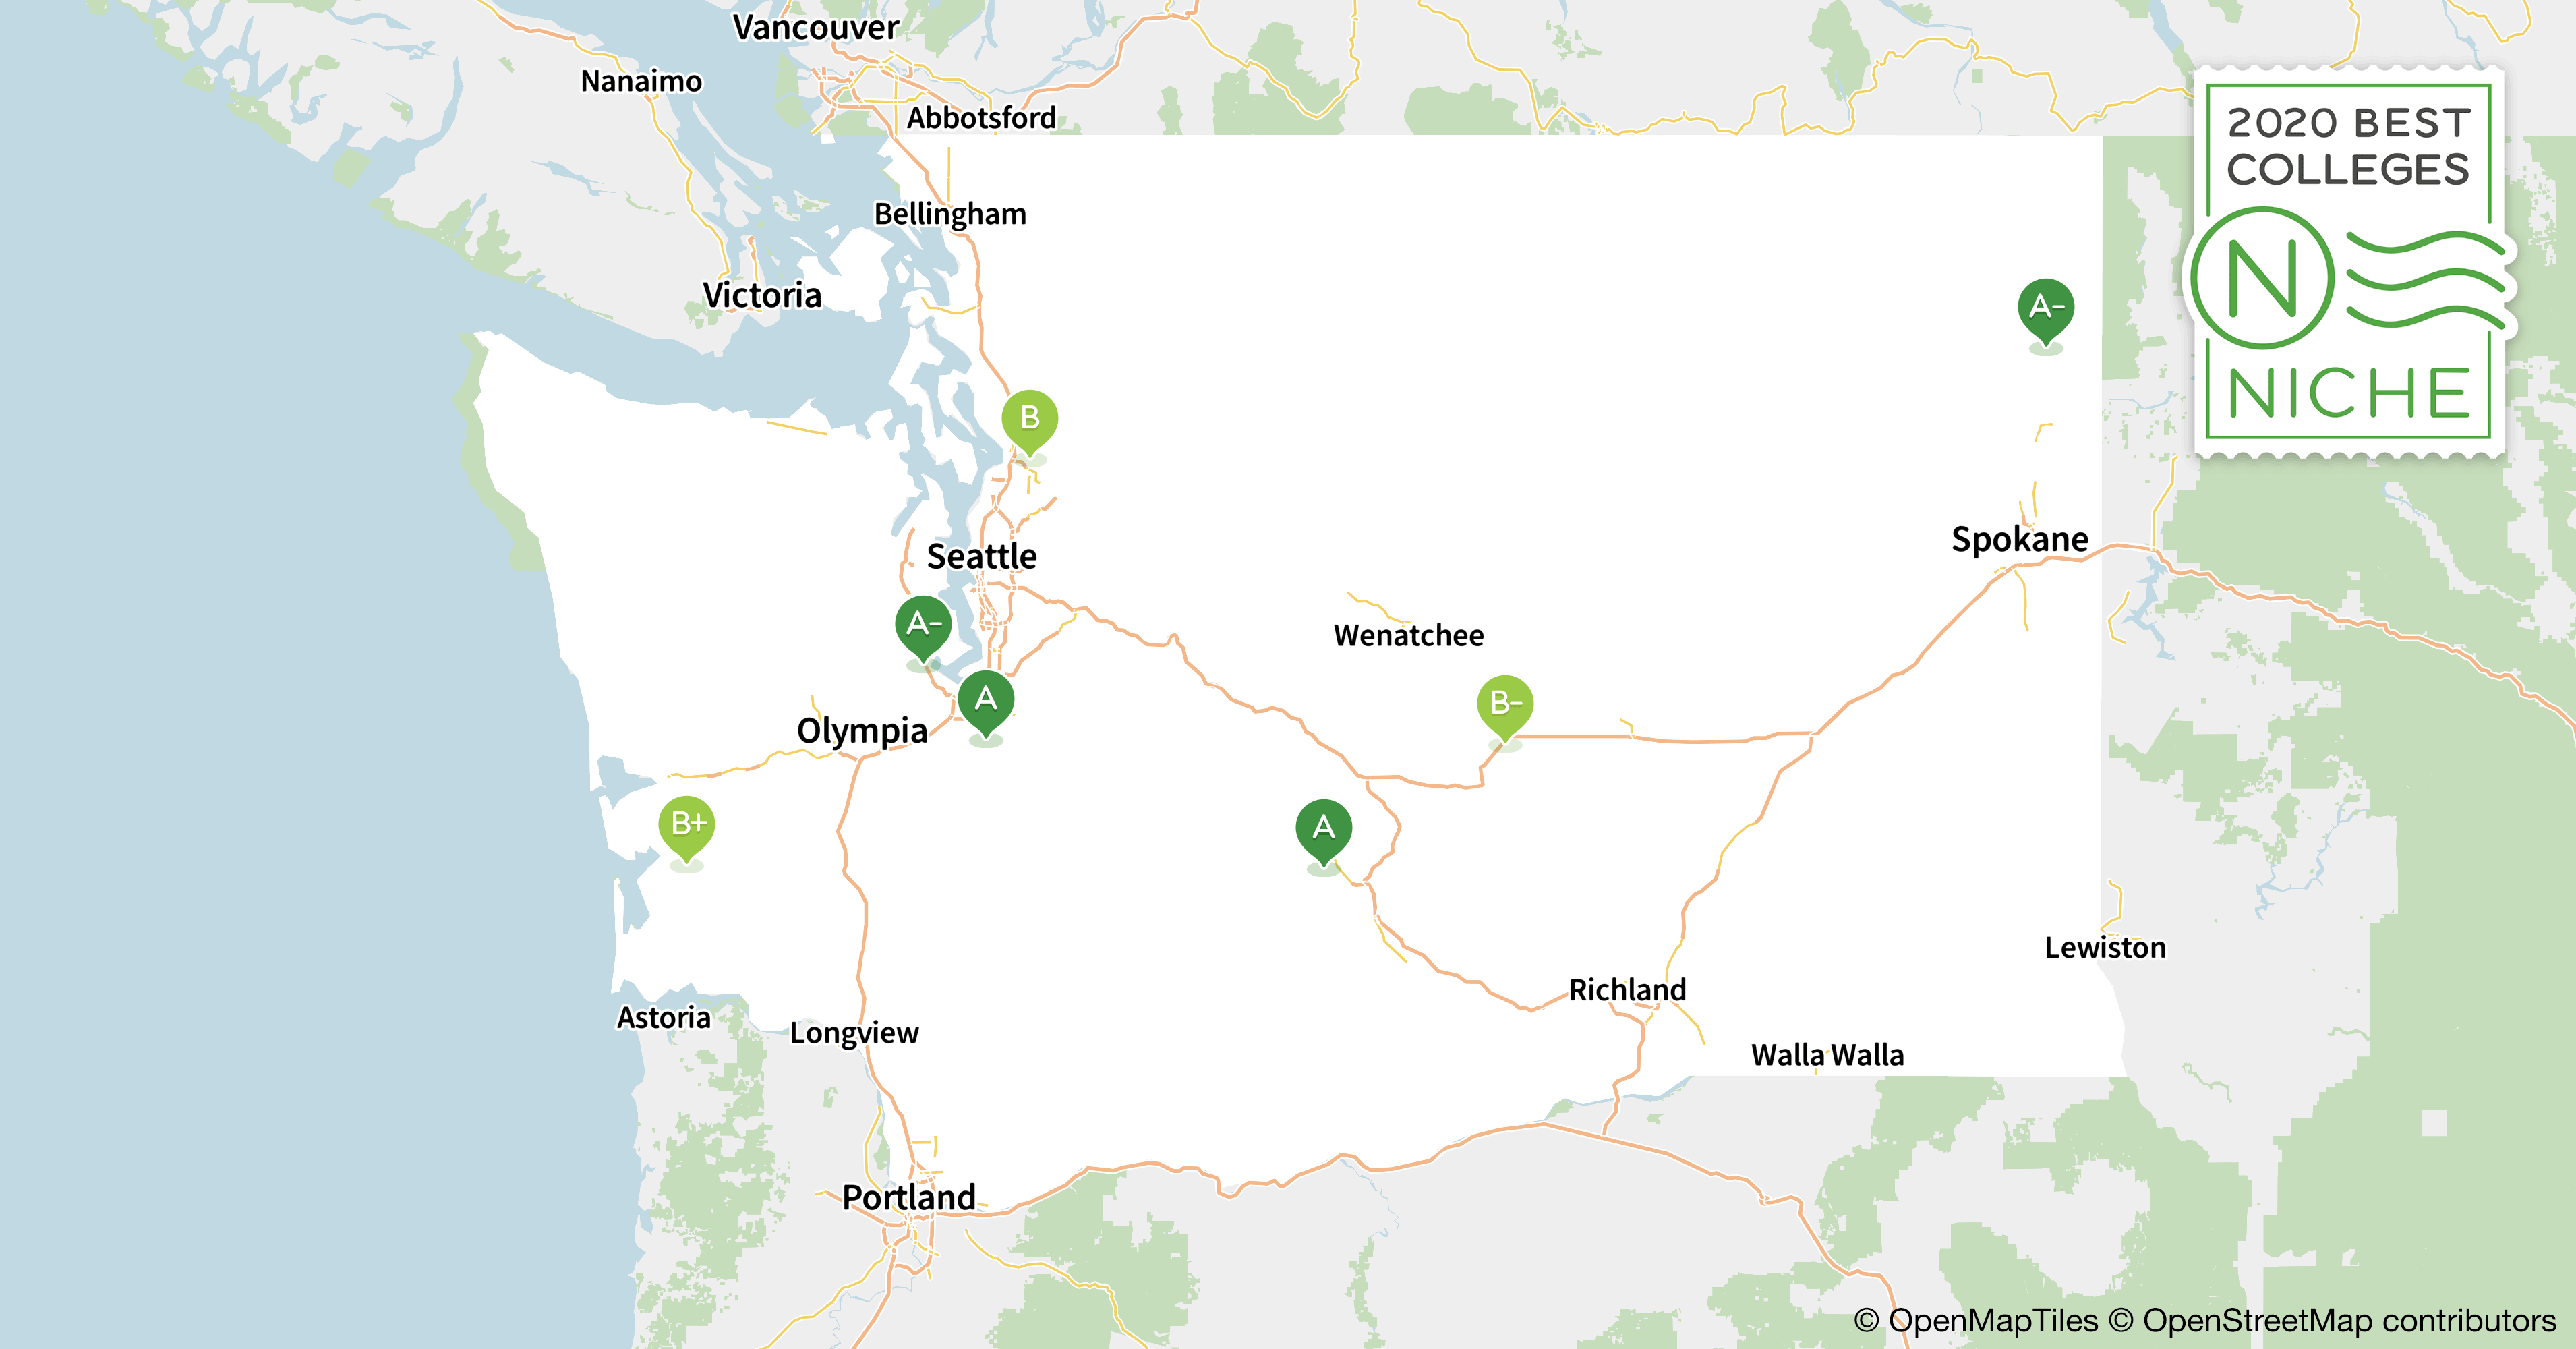 2020 Best Colleges in Washington - Niche I Map Washington State on route 90 map washington, interstate 90 map washington, seattle map washington, i-405 map washington, i-5 map washington, highway 20 map washington, i-90 wamap, interstate 5 map washington, i90 map washington,